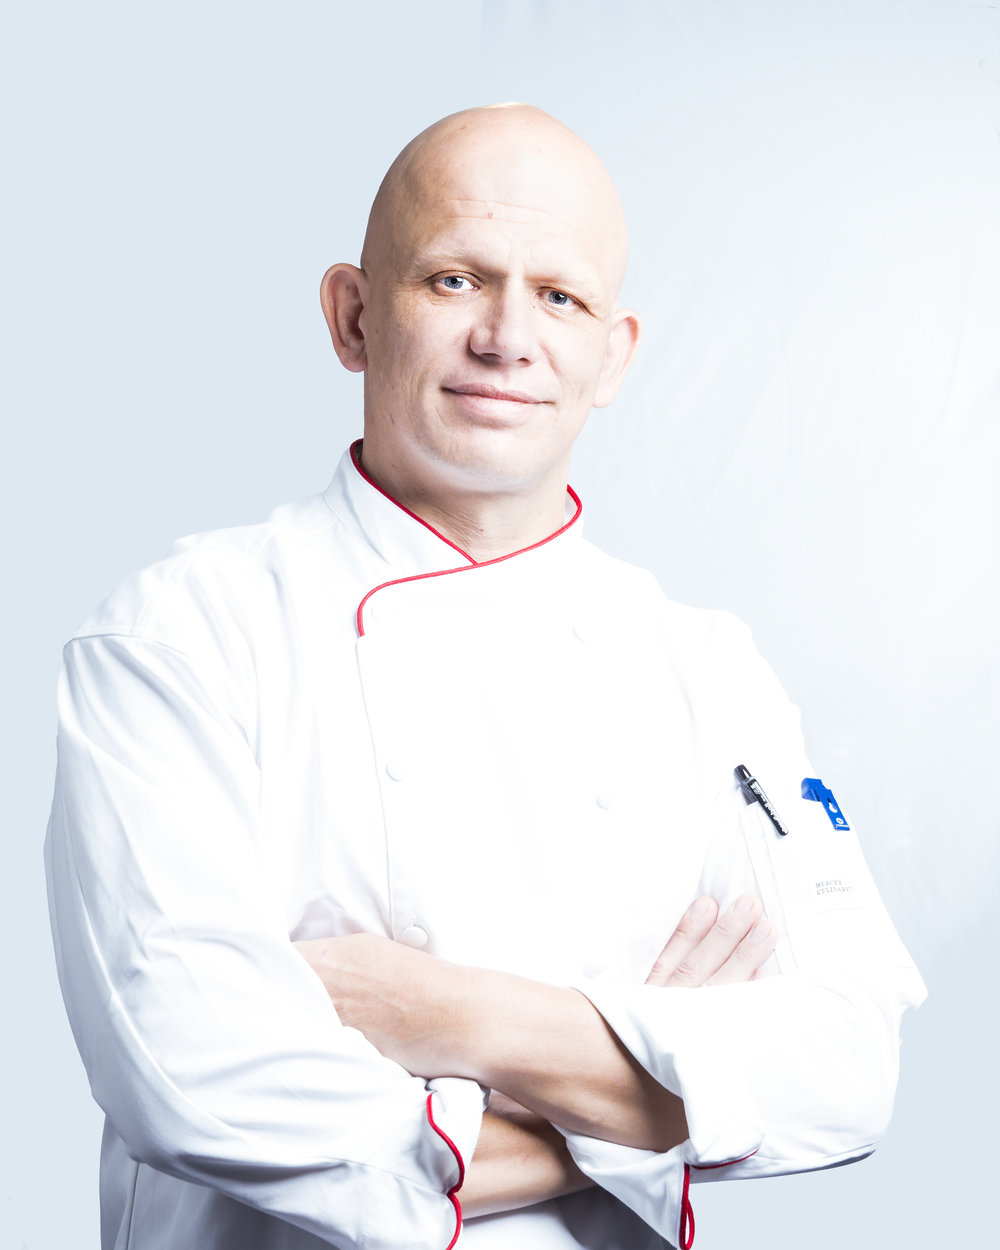 Head Chef's Portrait